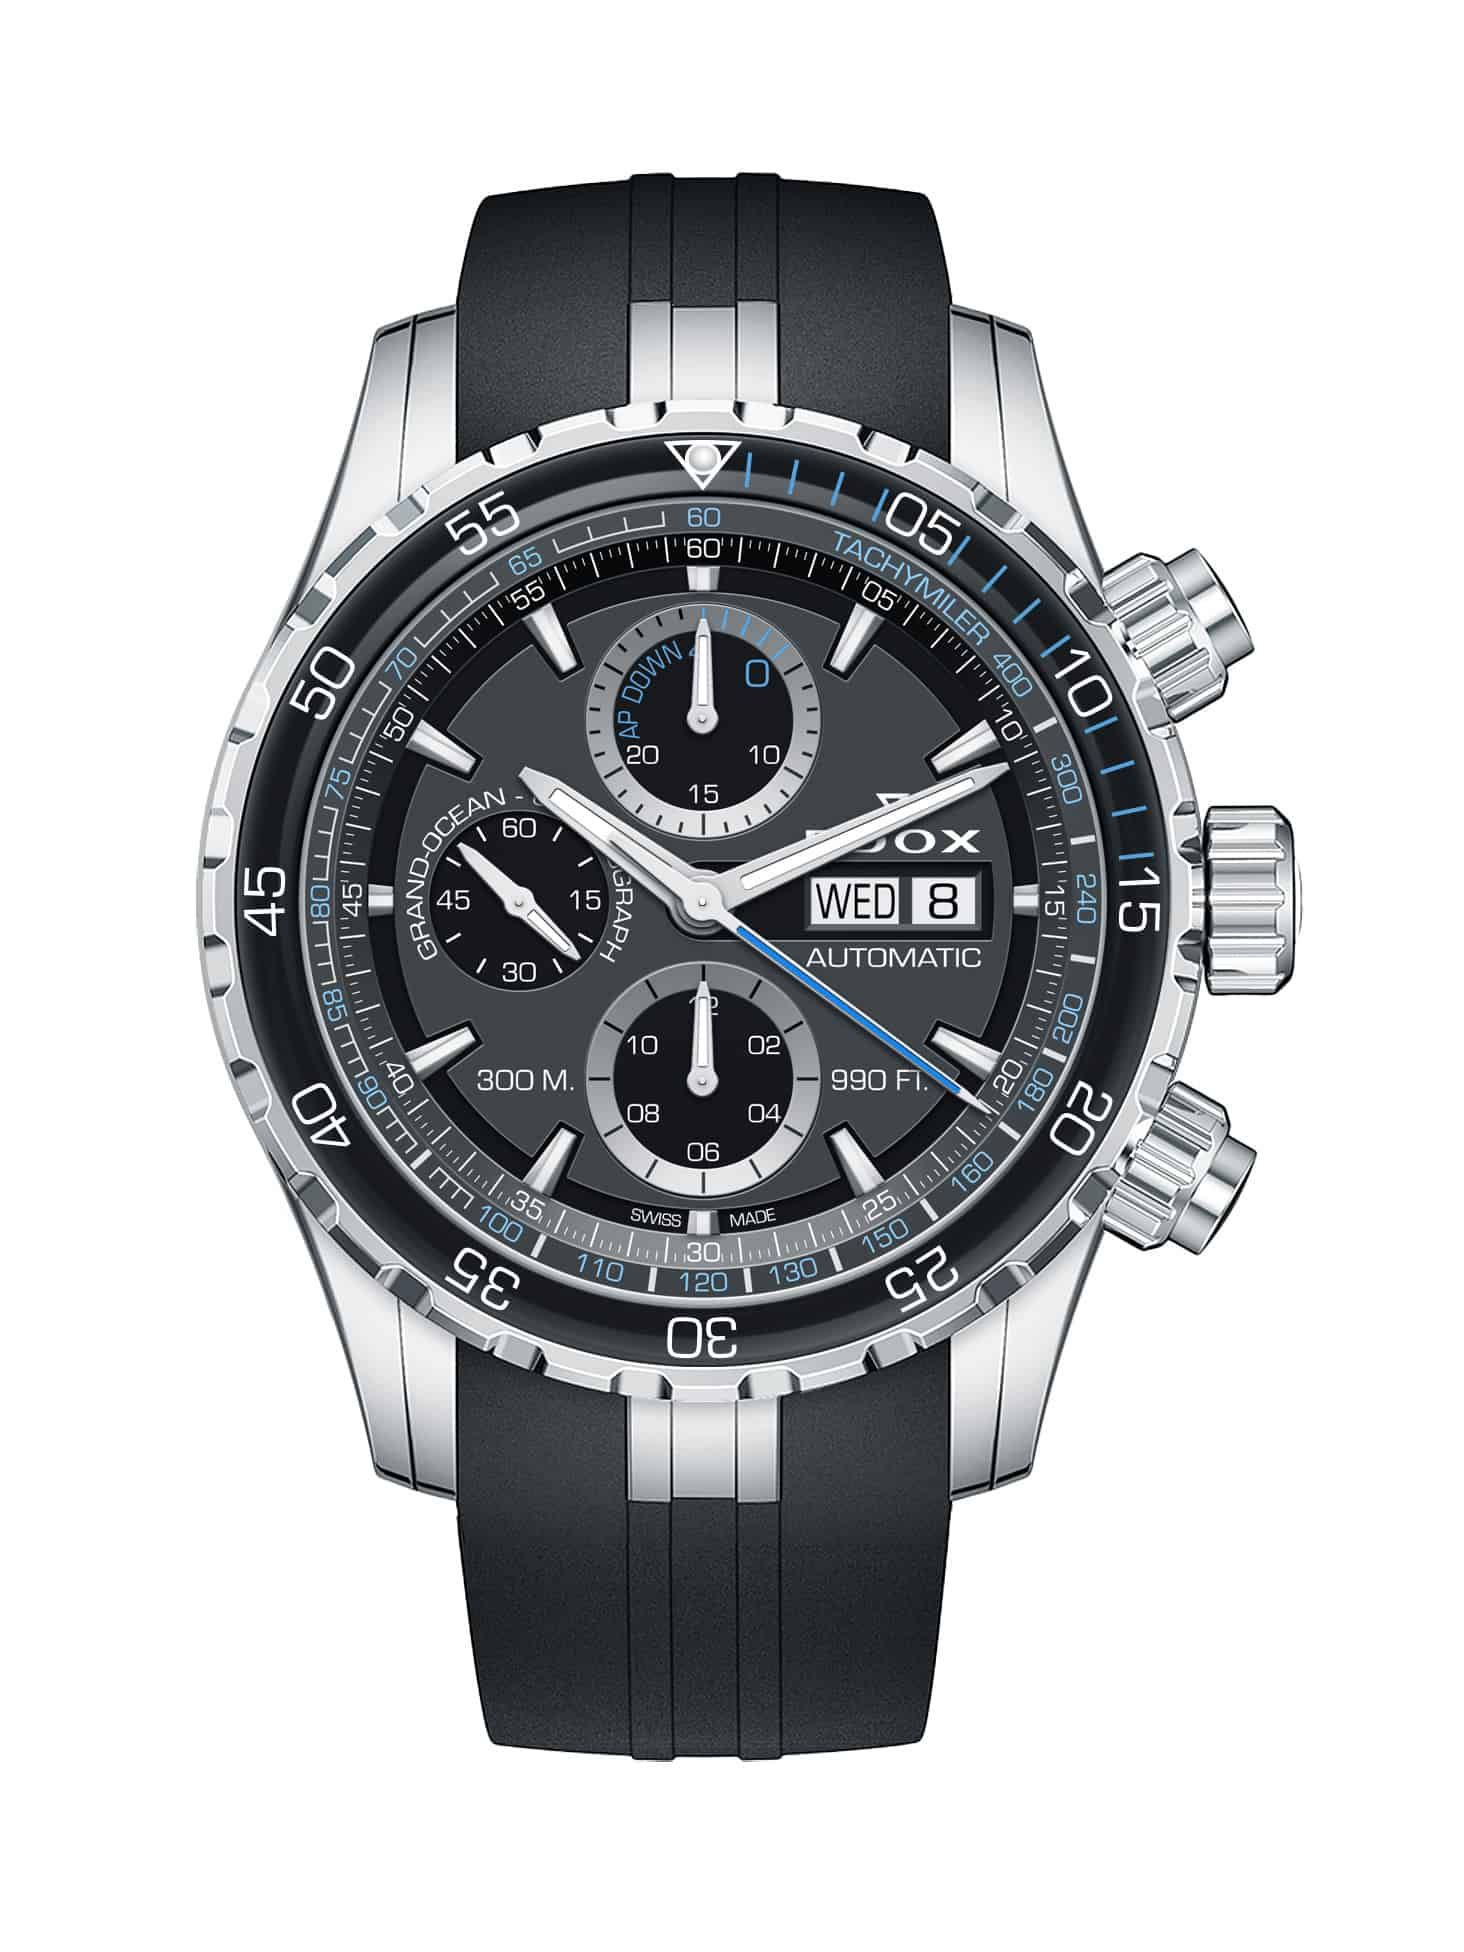 Grand-Ocean-Automatic-Chronograph_01123 3BUCA NBUN